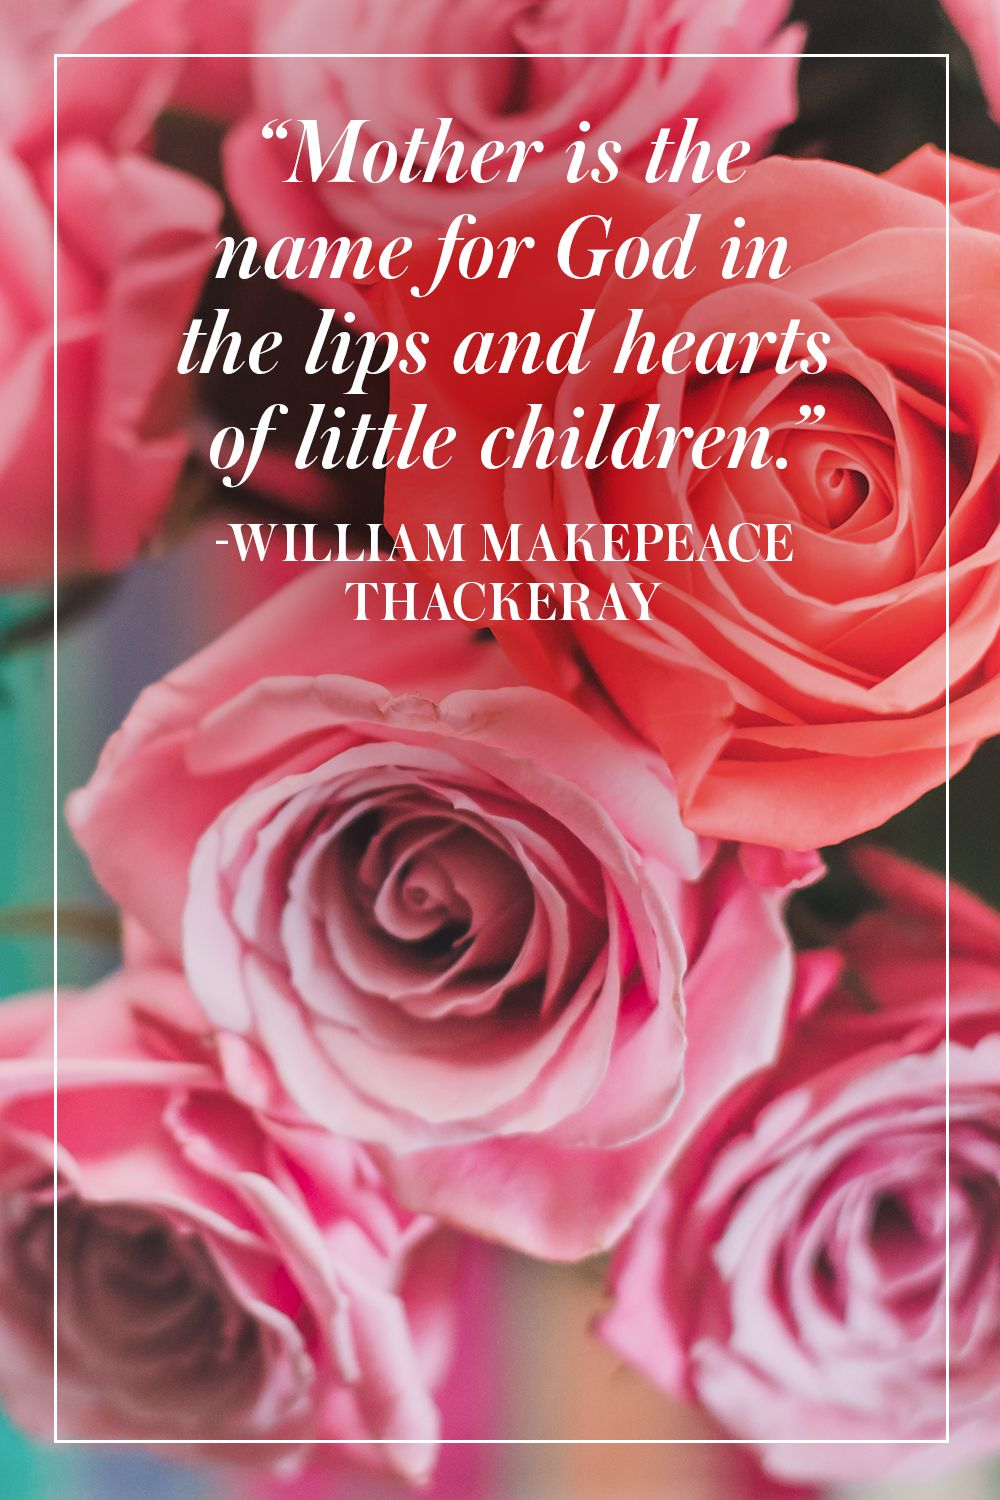 26 Best Mother's Day Quotes - Beautiful Mom Sayings for ...